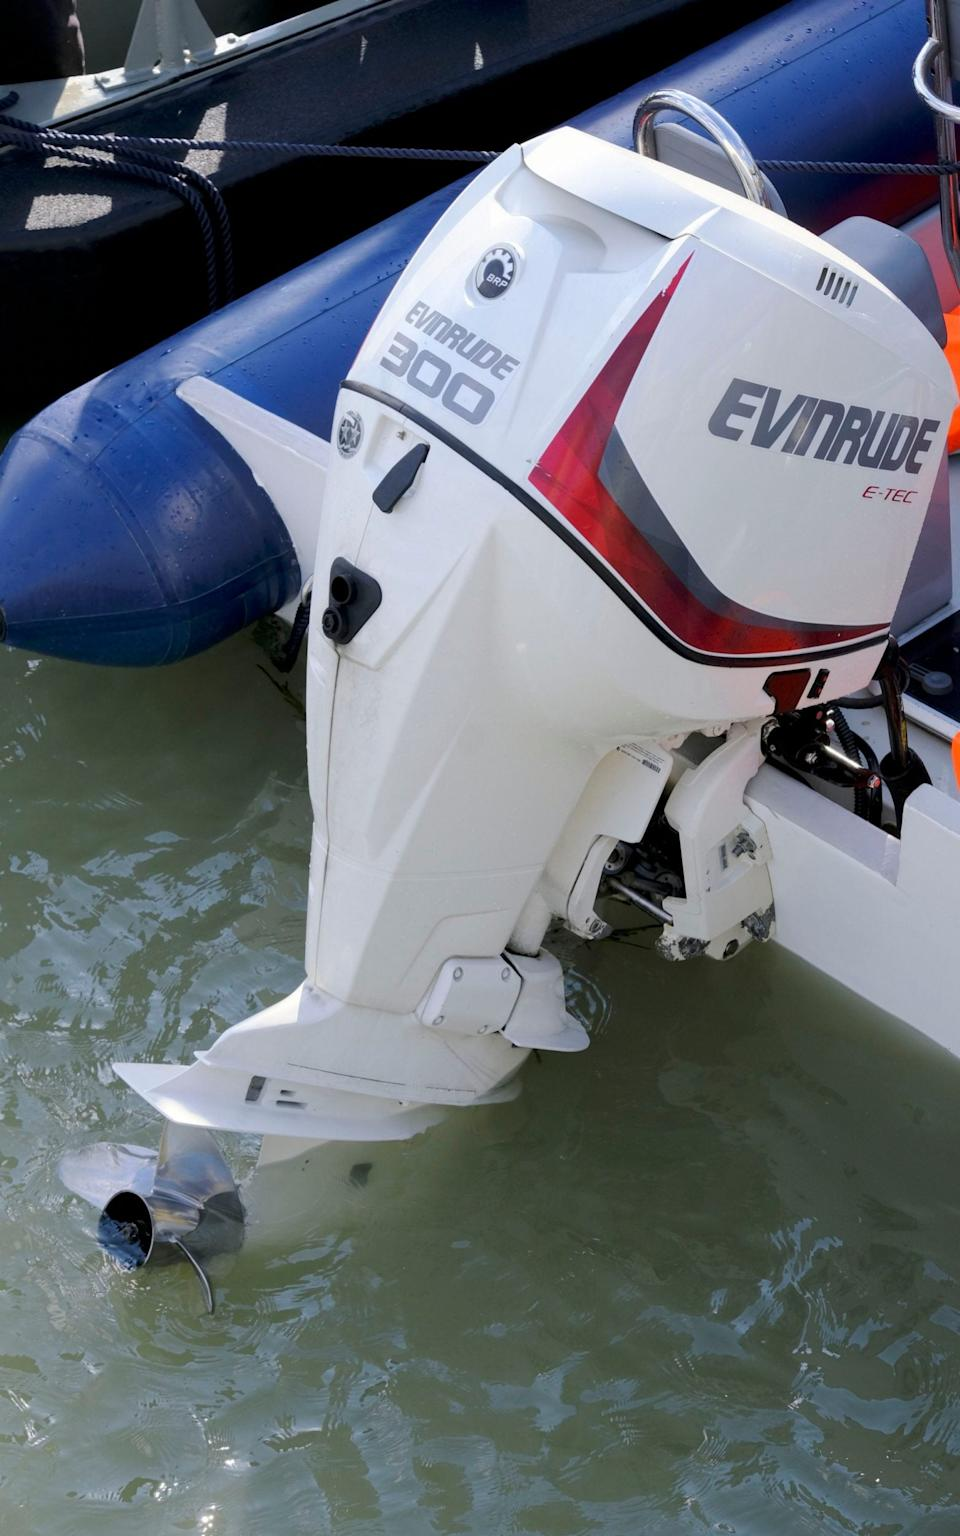 The boat was fitted with a £20,000 300bhp engine - Steve Finn